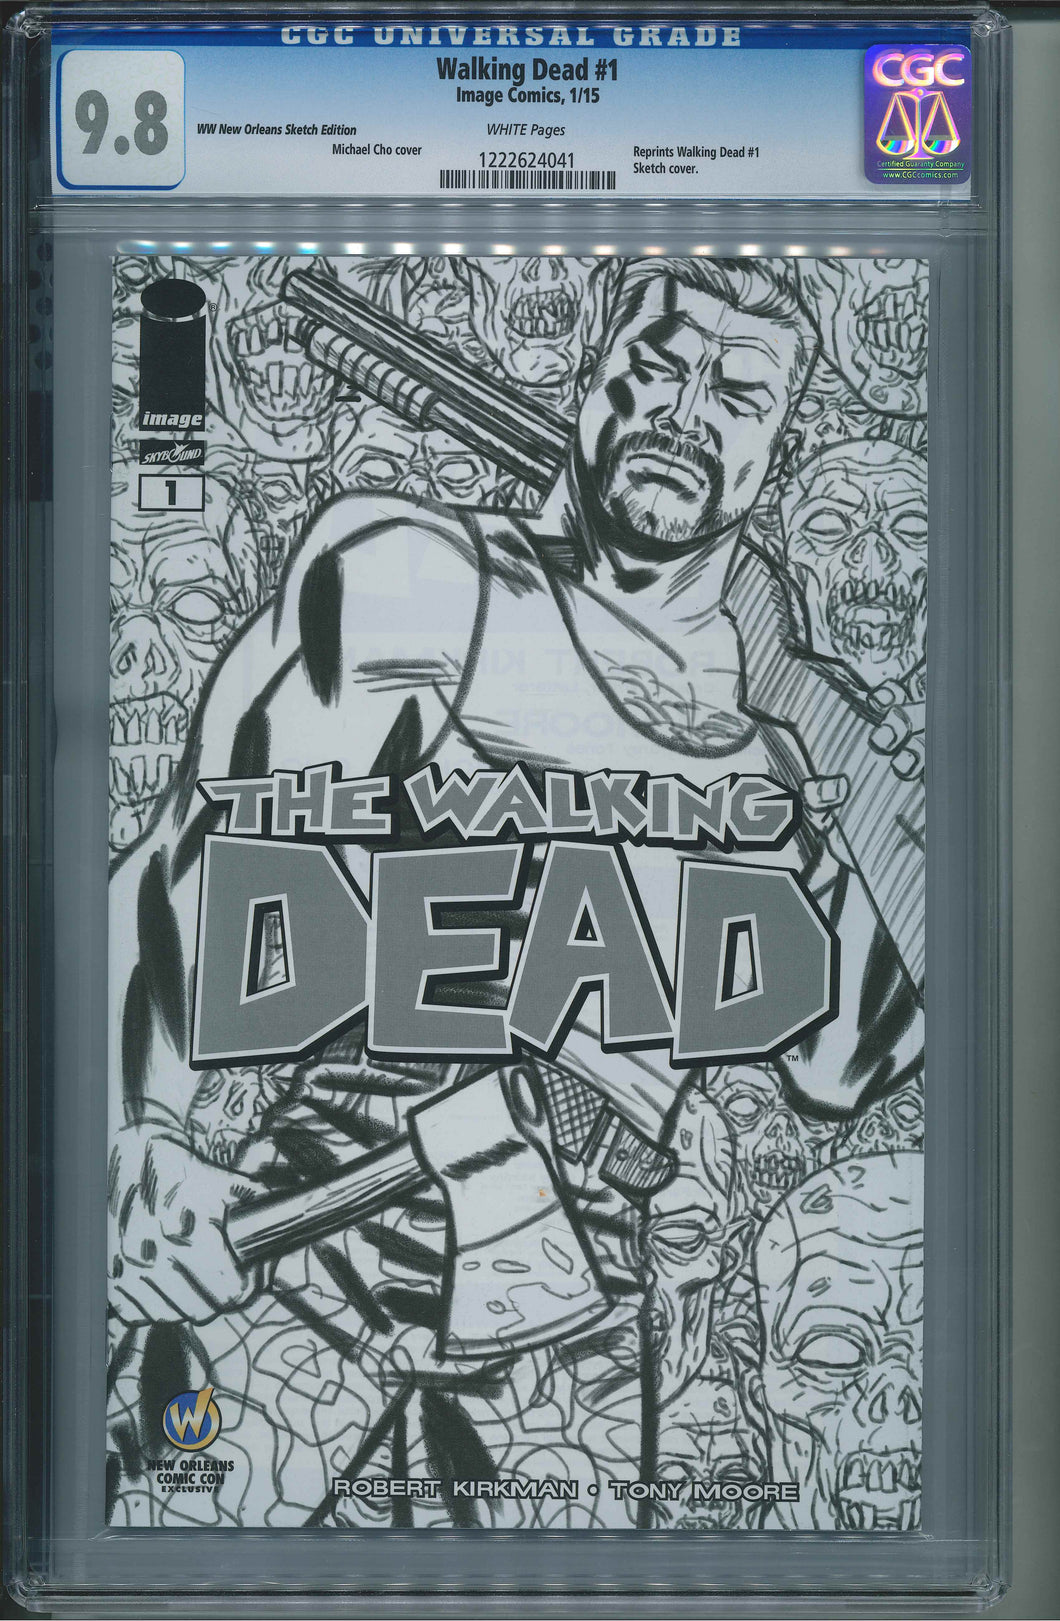 The Walking Dead #1 Wizard World New Orleans Sketch Edition CGC 9.8 Michael Cho Cover